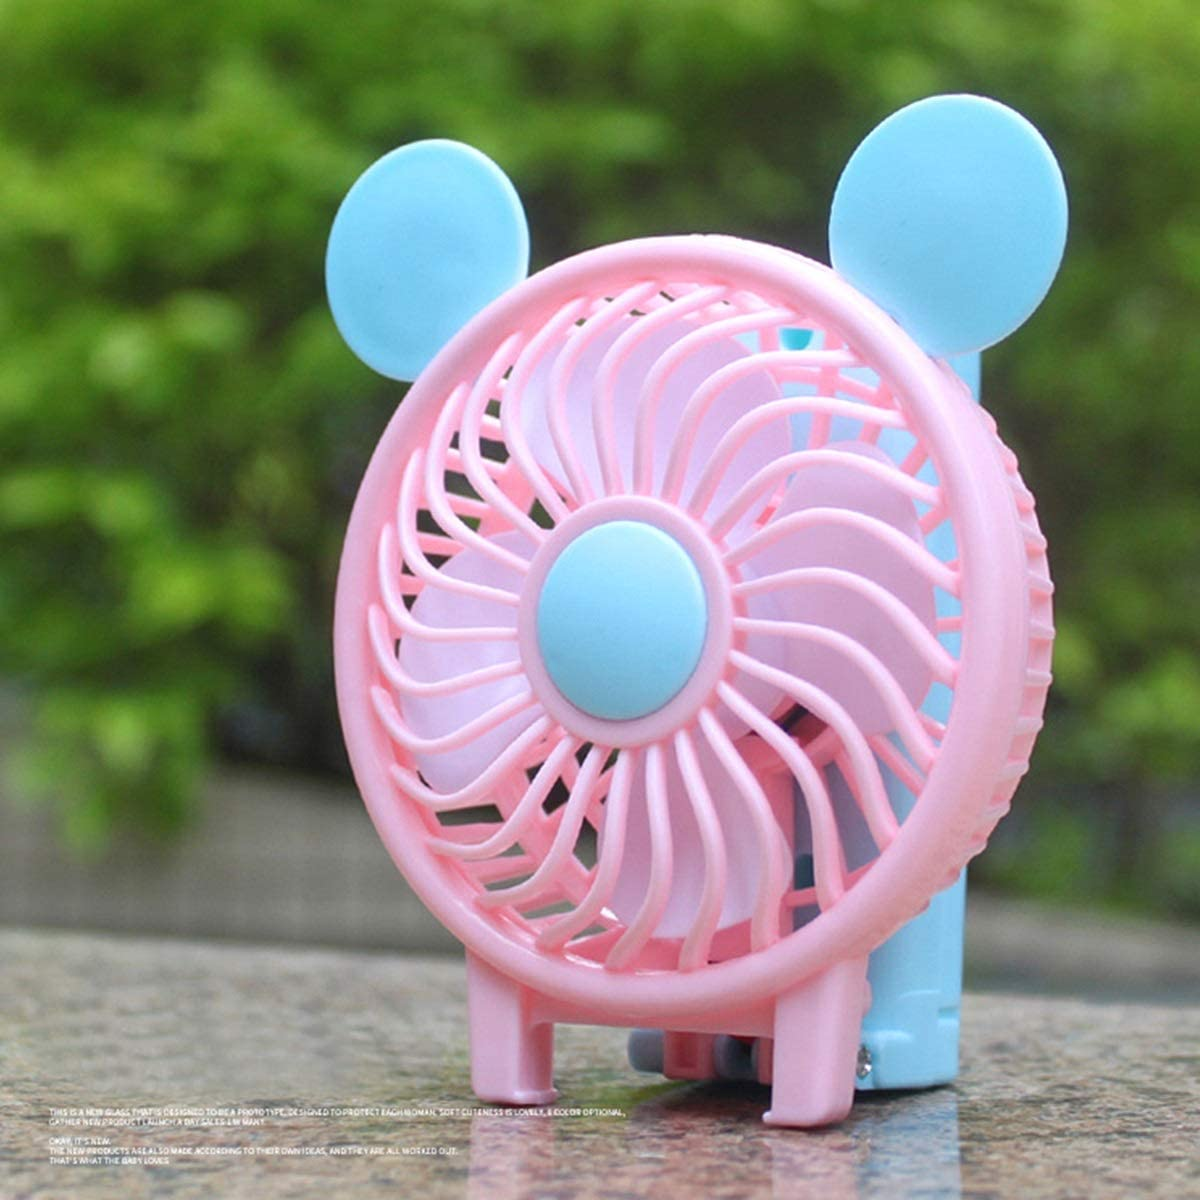 Mini Electric Desk Cooling Fan for Office Room Outdoor Travel Color : Pink Haokaini Portable USB Charging Fans Cute Foldable Cooling Fan